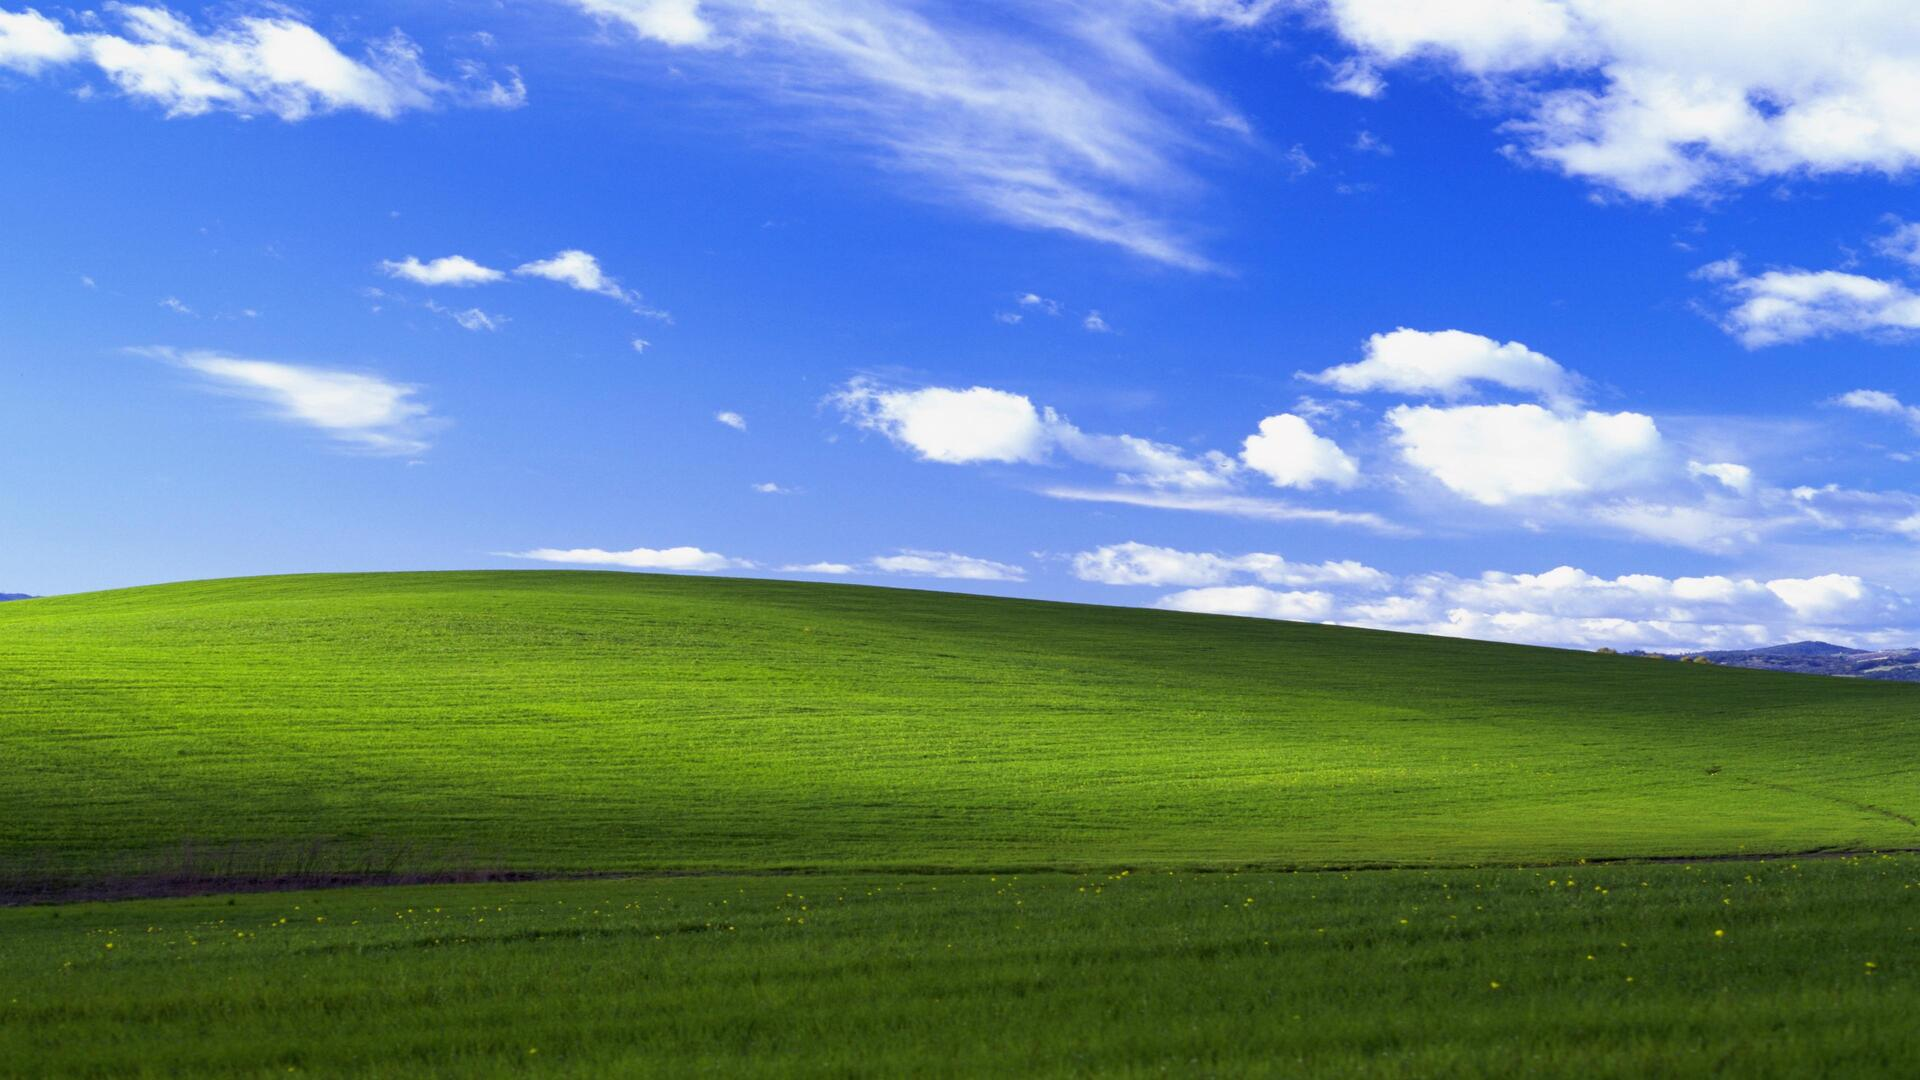 19x1080 Windows Xp Bliss 4k Laptop Full Hd 1080p Hd 4k Wallpapers Images Backgrounds Photos And Pictures